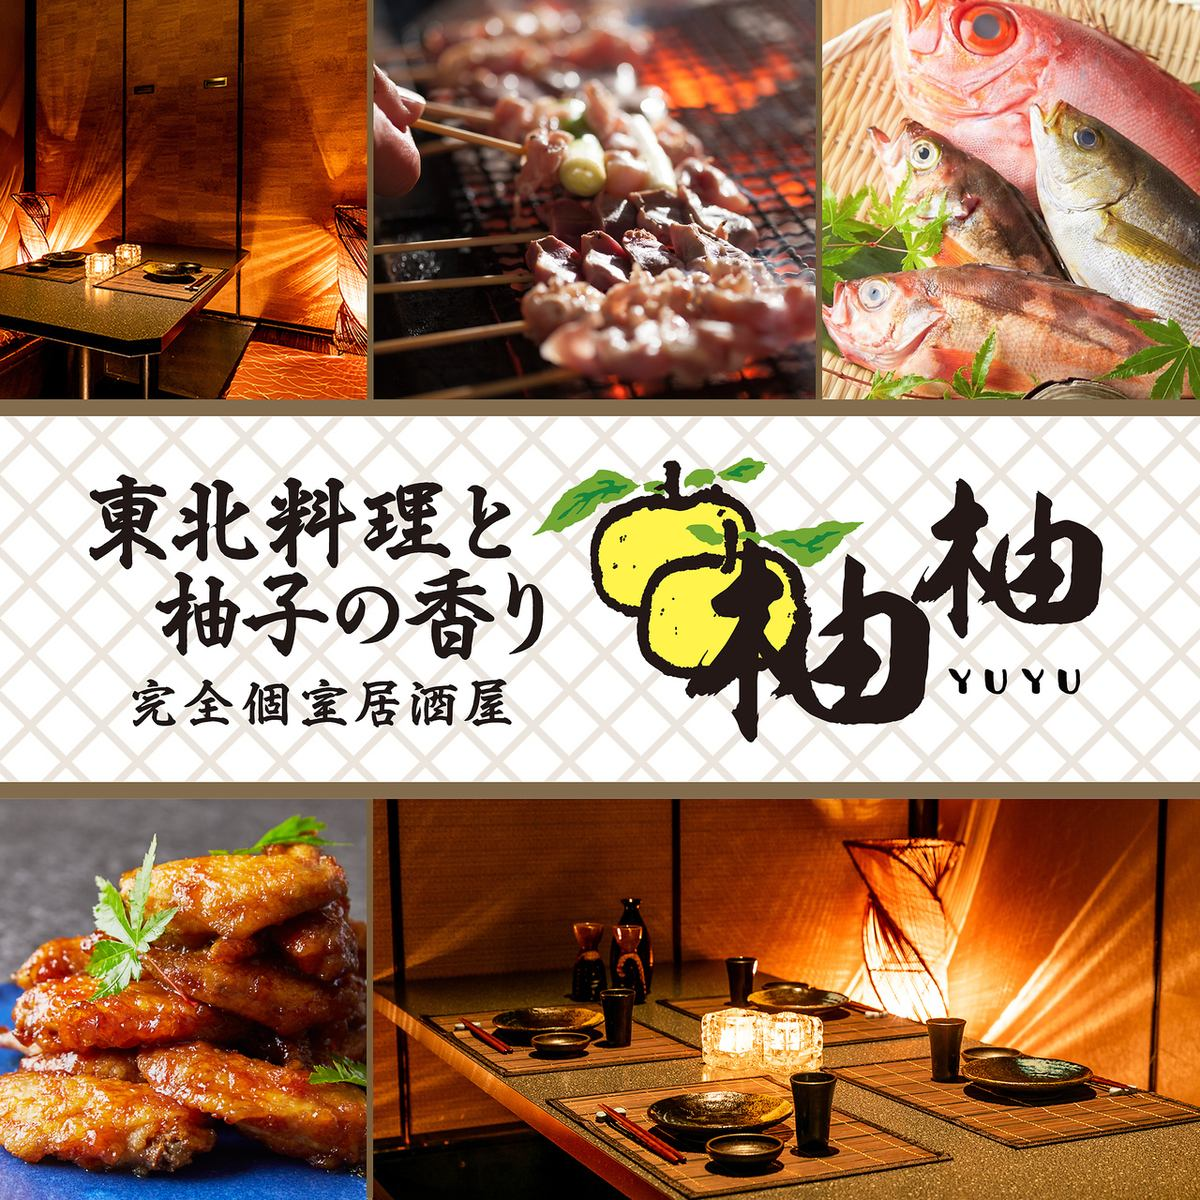 All-you-can-drink x full seating private room ☆ private room izakaya Yuzu Shizuoka station square store ☆ any number of private room izakaya ♪